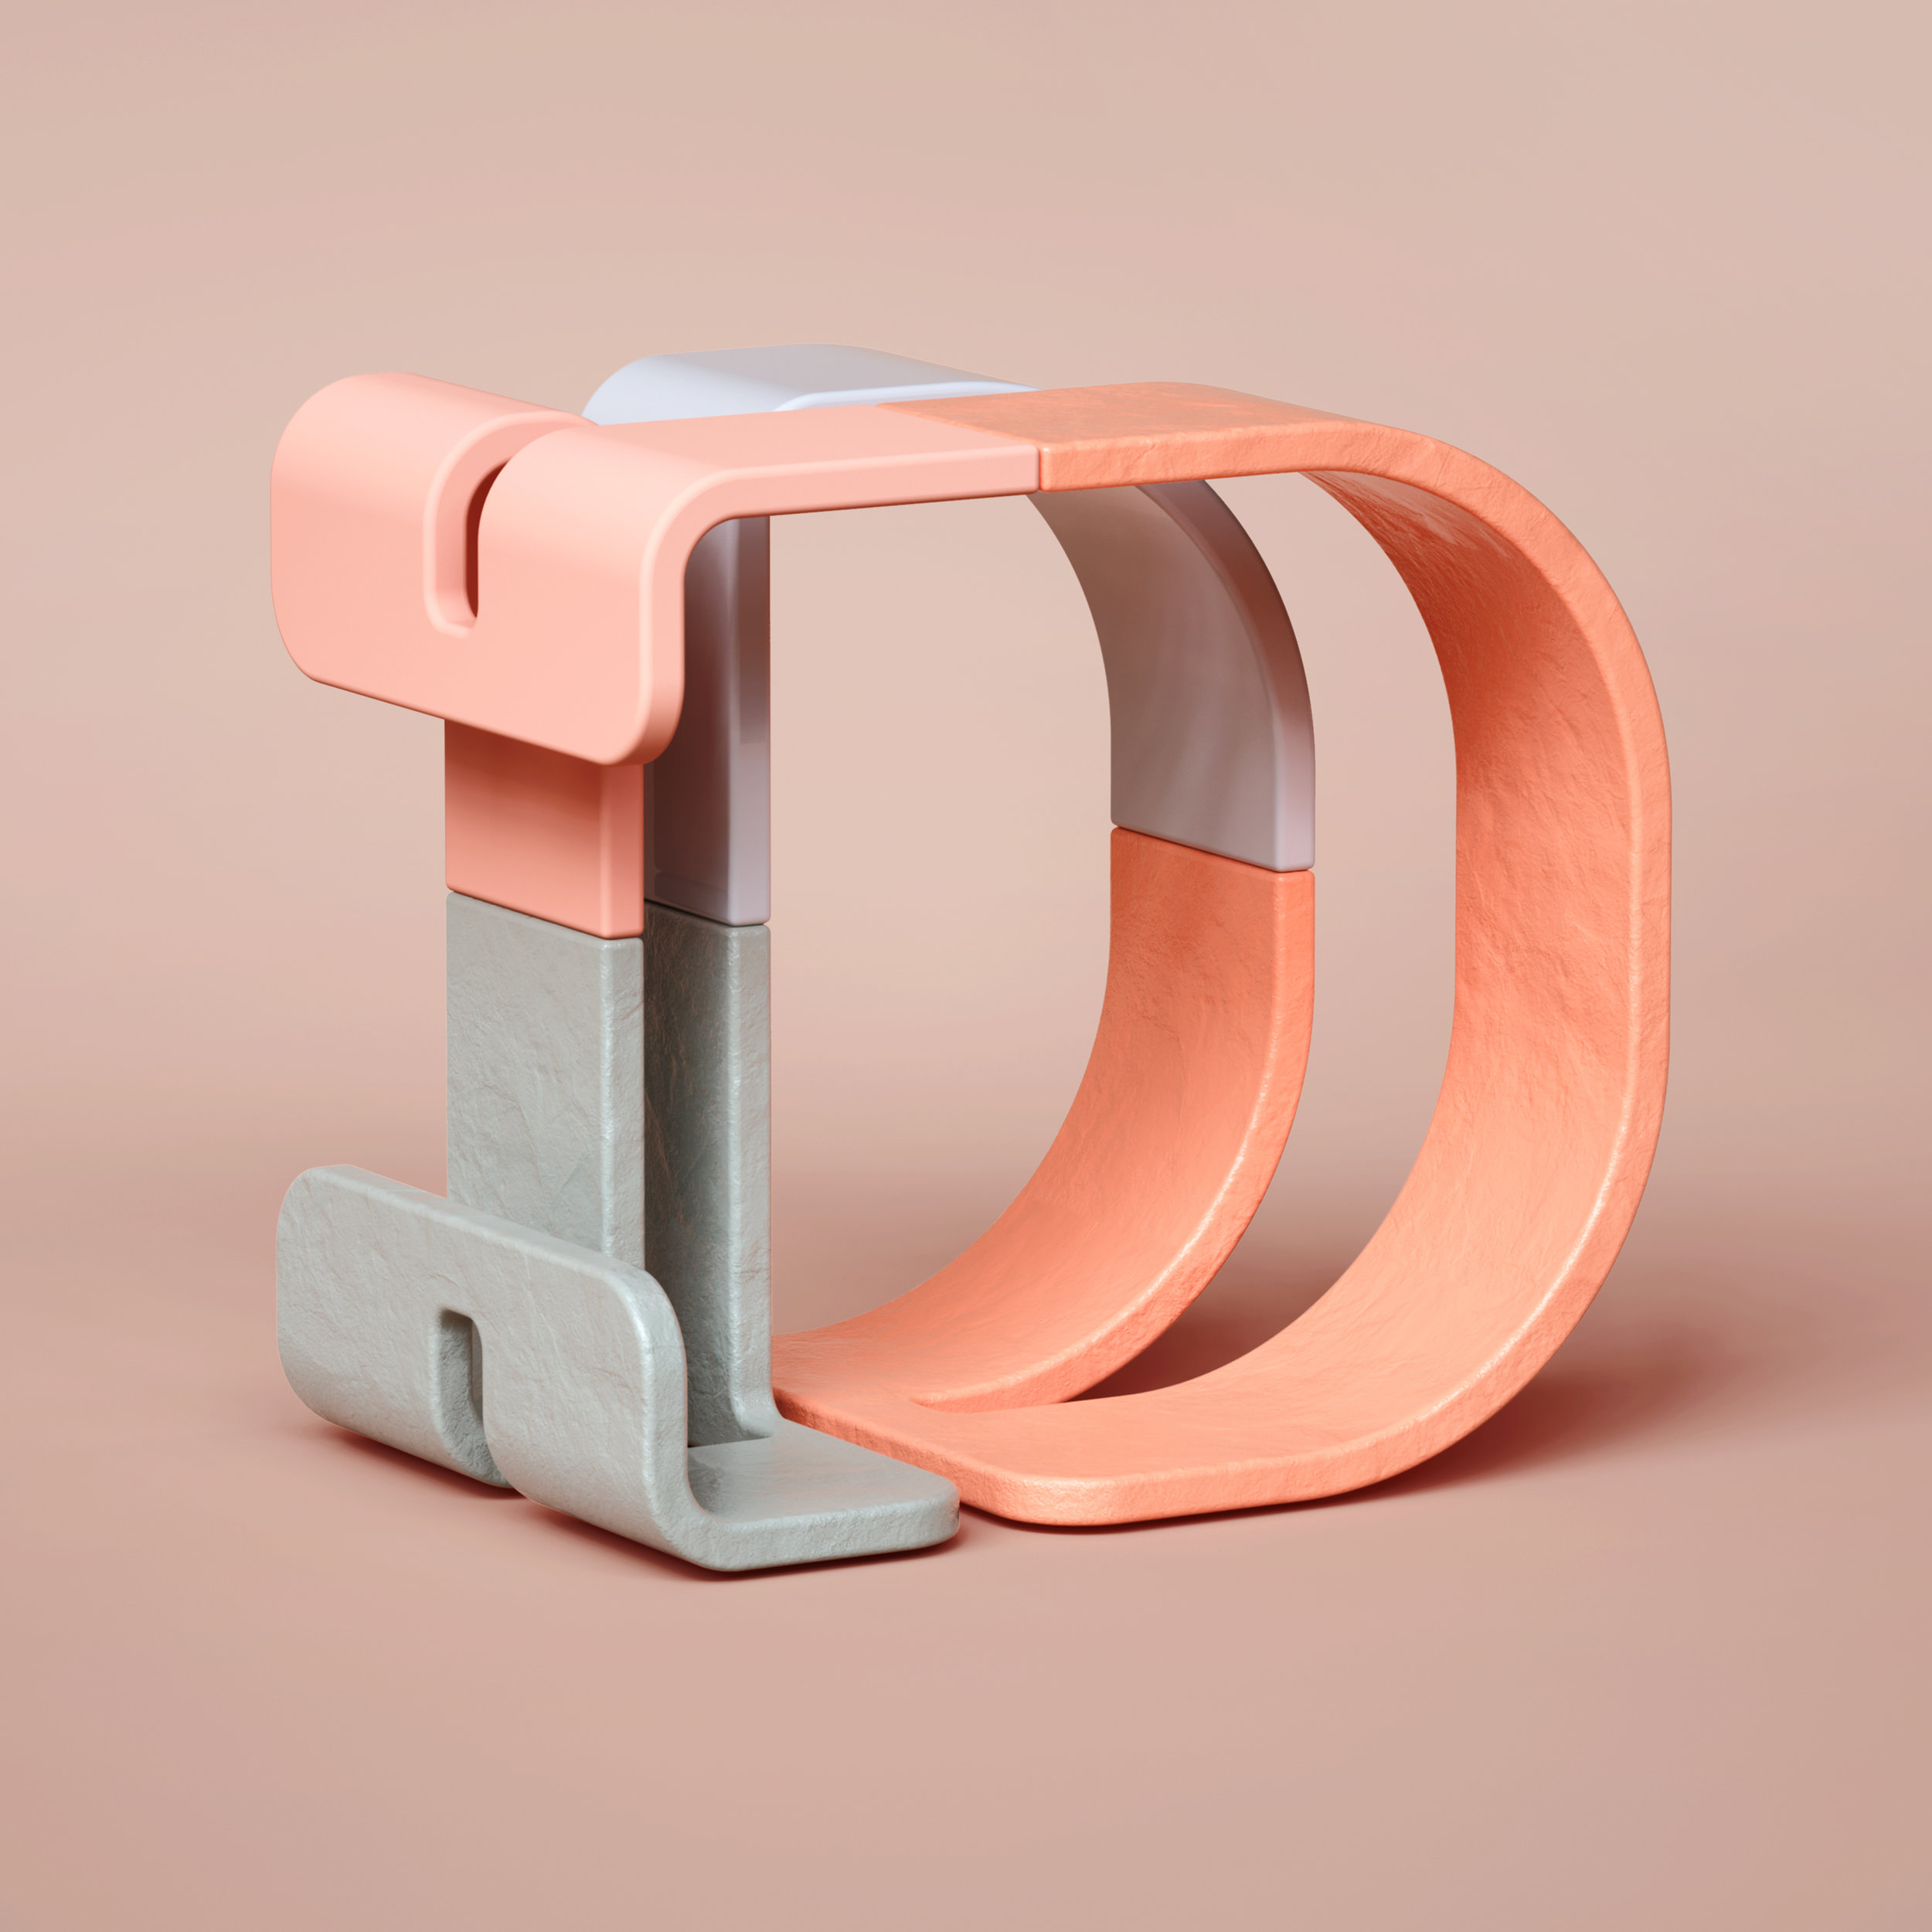 36 Days of Type 2019 - 3D Typeform letter D visual.